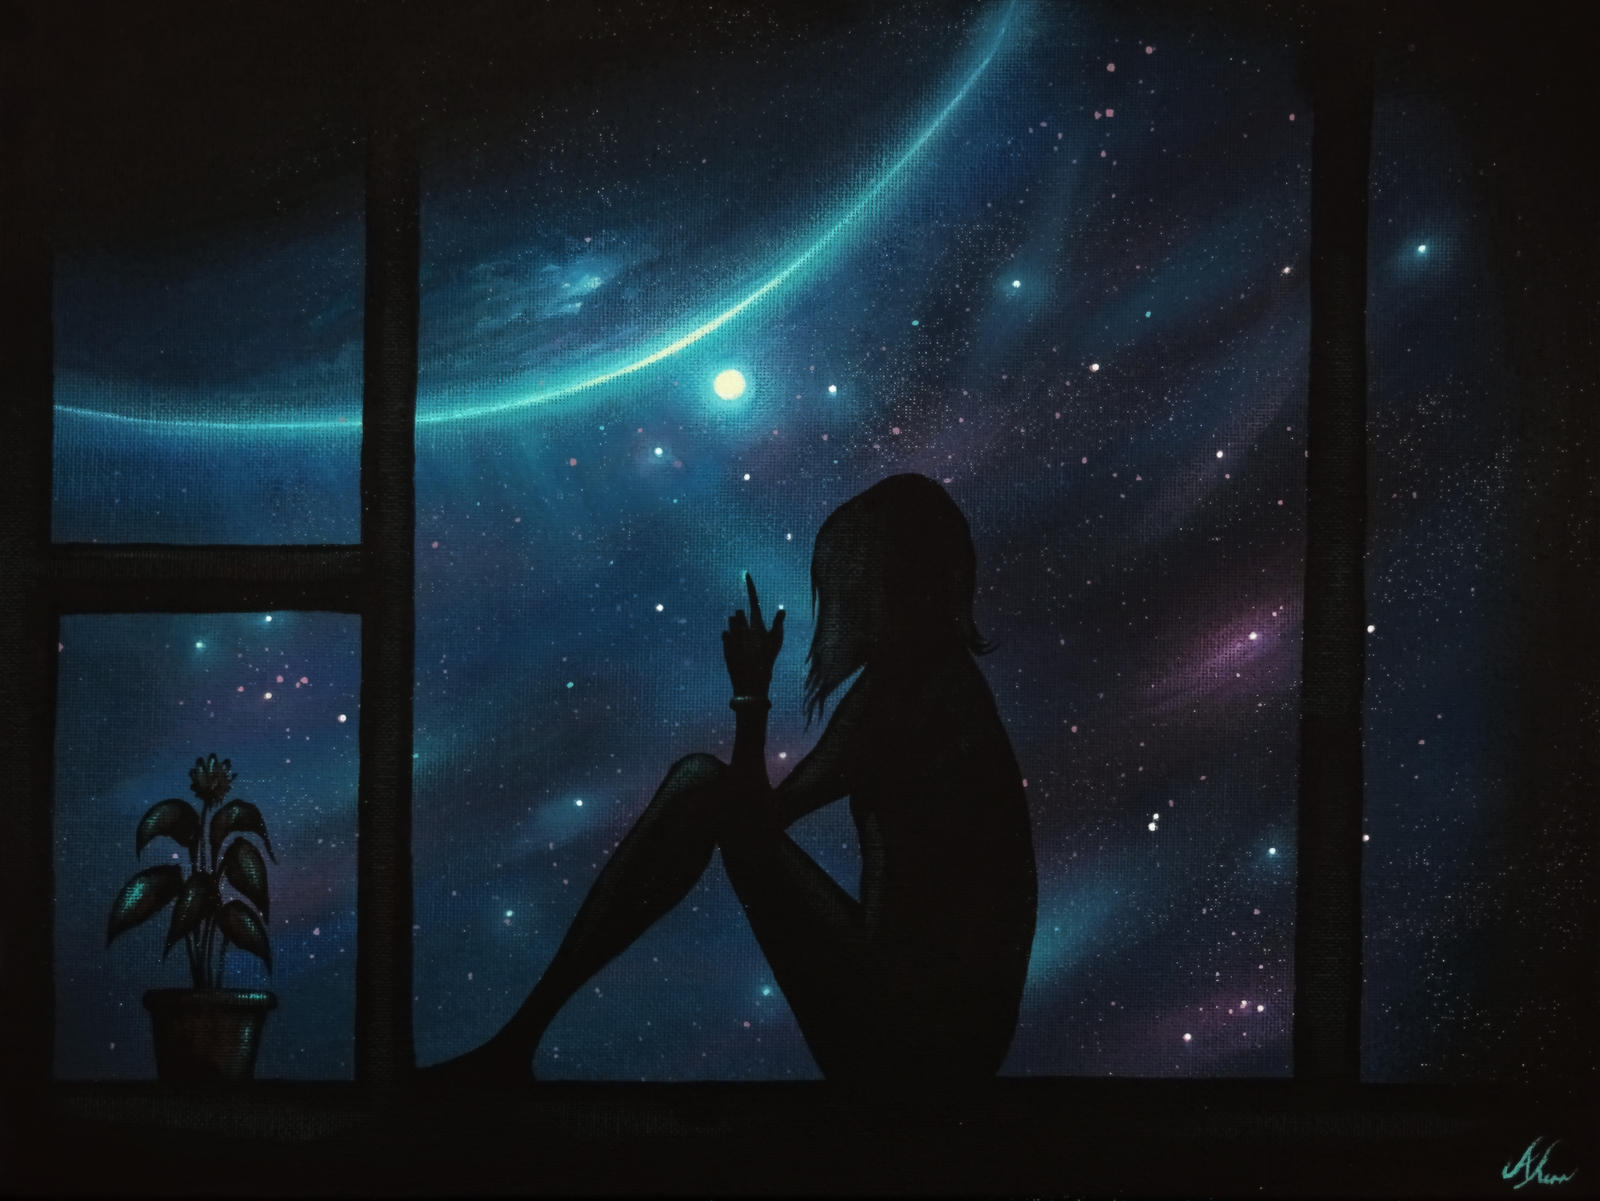 Touching the stars by alexkerrart